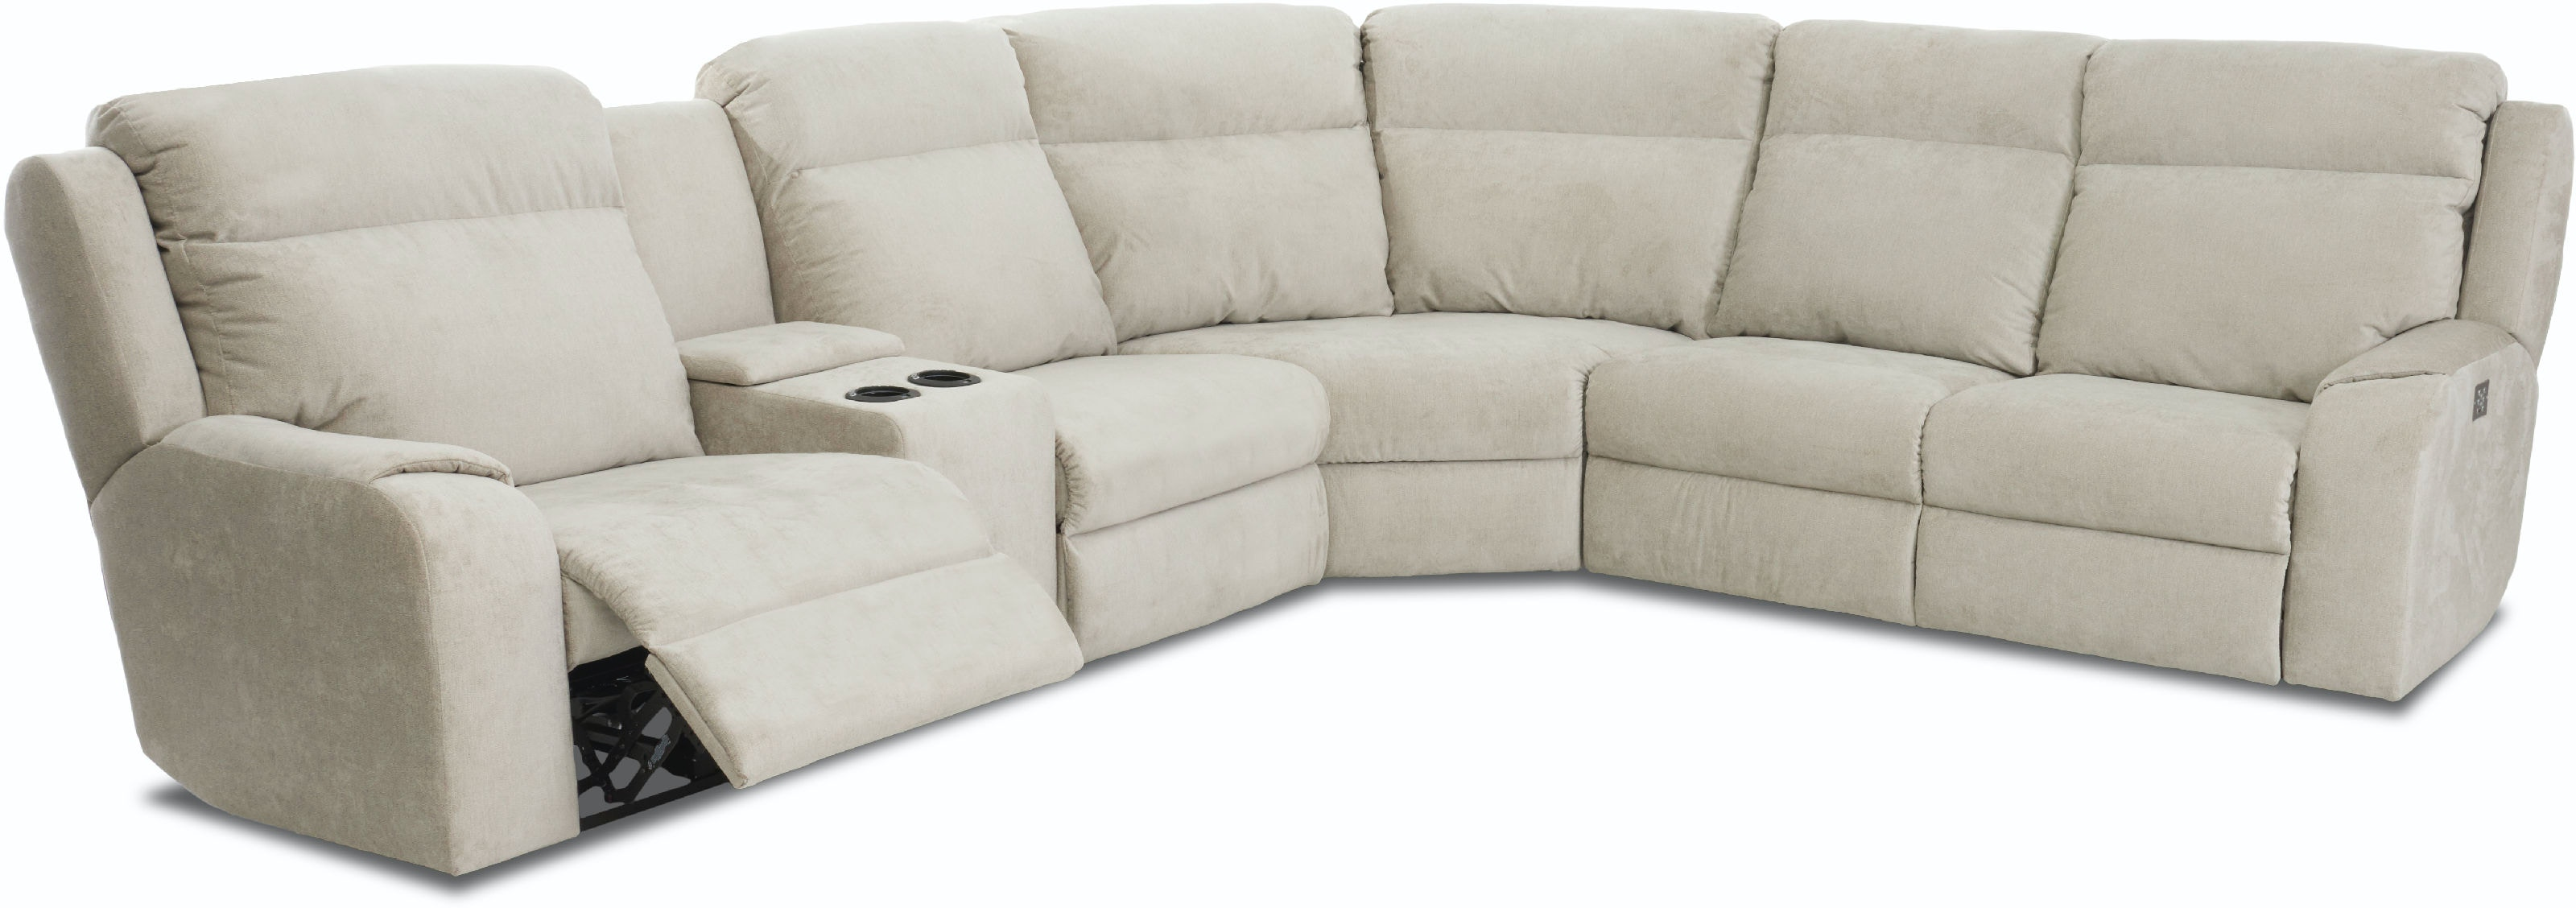 70903 8 Sectklaussner Sectional Karl S